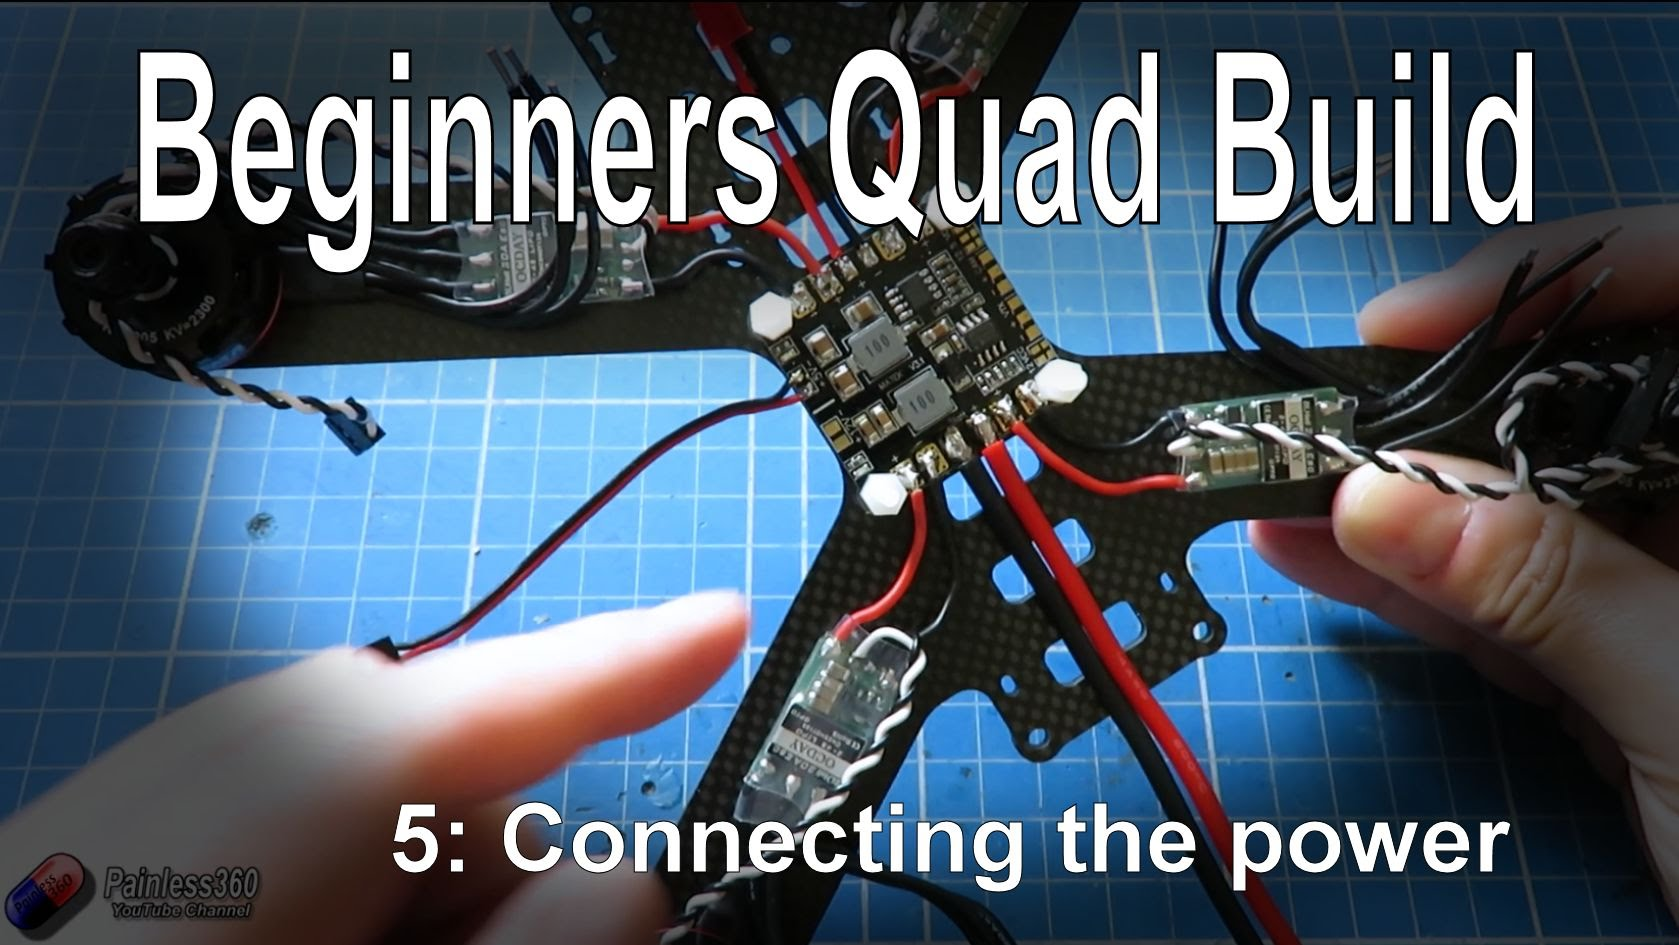 59 Quadcopter Building For Beginners Connecting The Main Power Of Guide To Your Rc Plane Electronic Parts Enjoyed This Video